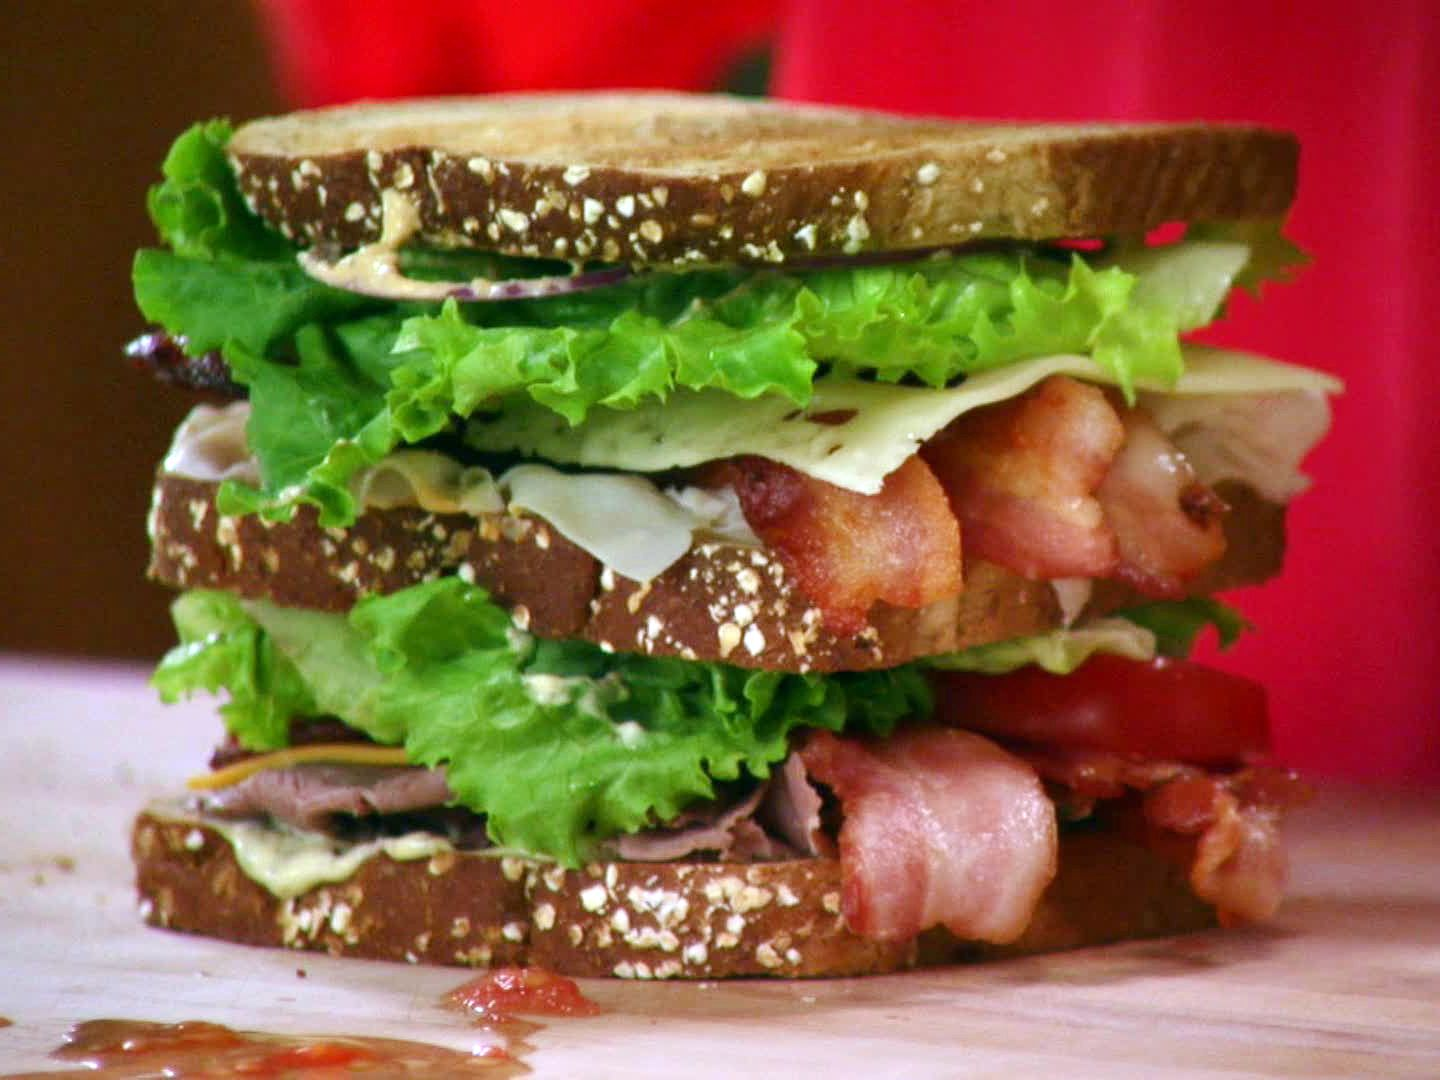 Colossal club sandwiches recipe pioneer woman recipes and food colossal club sandwiches the pioneer womanpioneer woman recipespioneer forumfinder Image collections